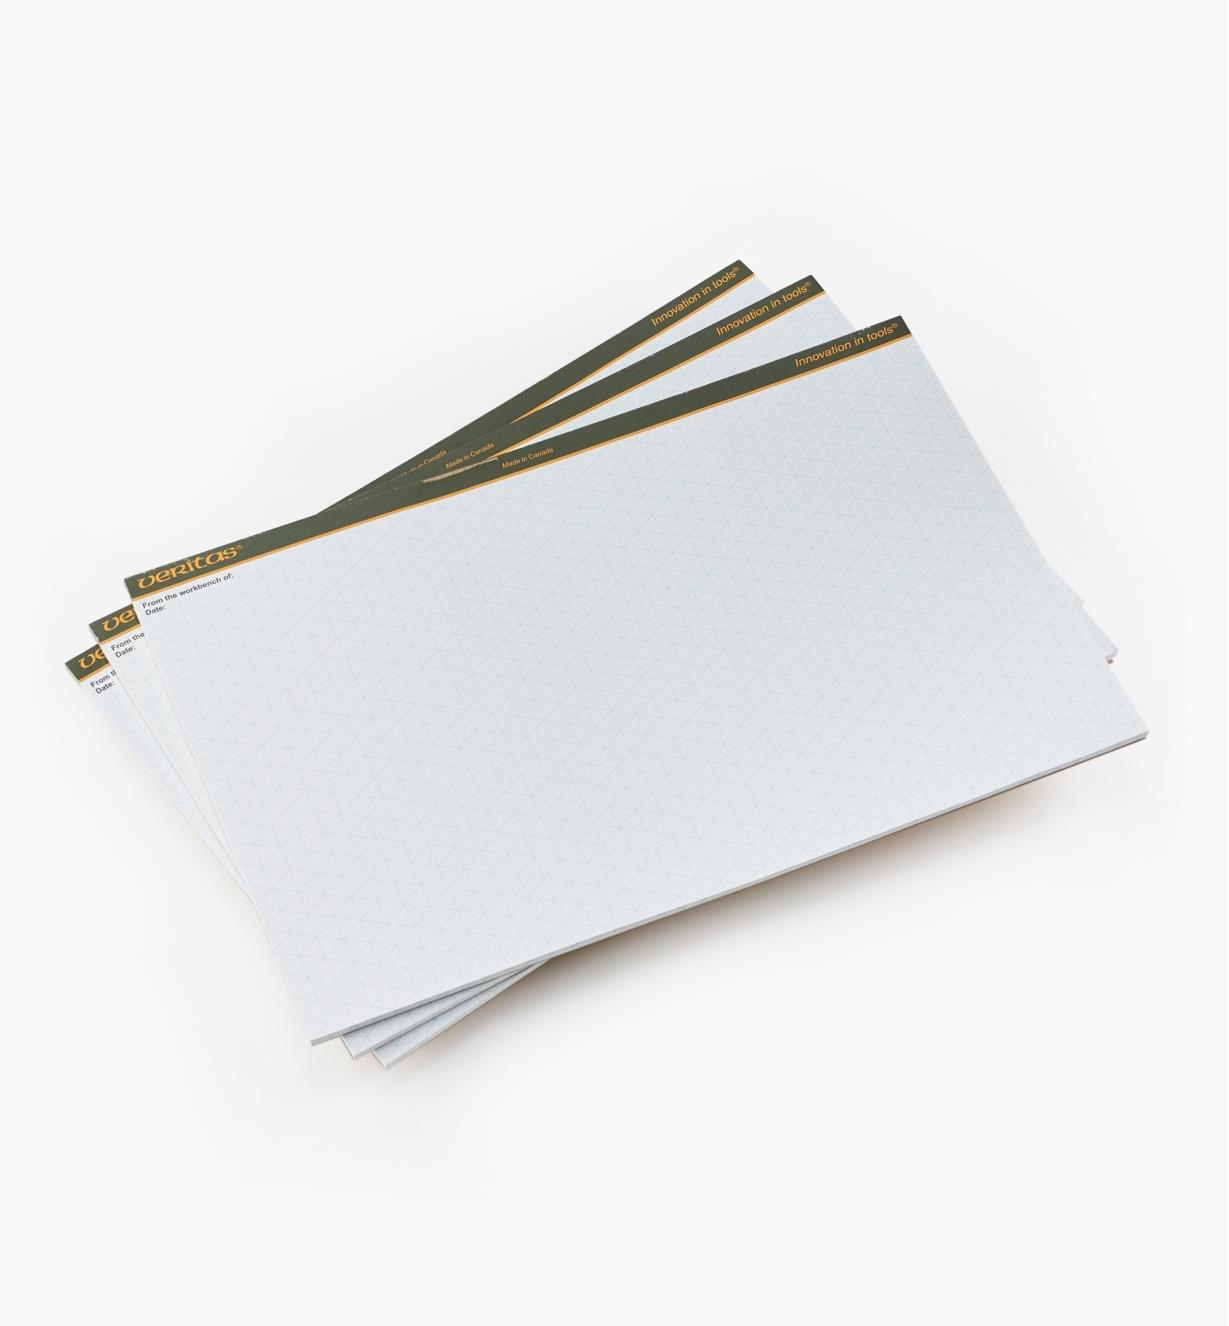 "05L2151 - 11"" x17"" Drawing Pads, pkg. of 3"